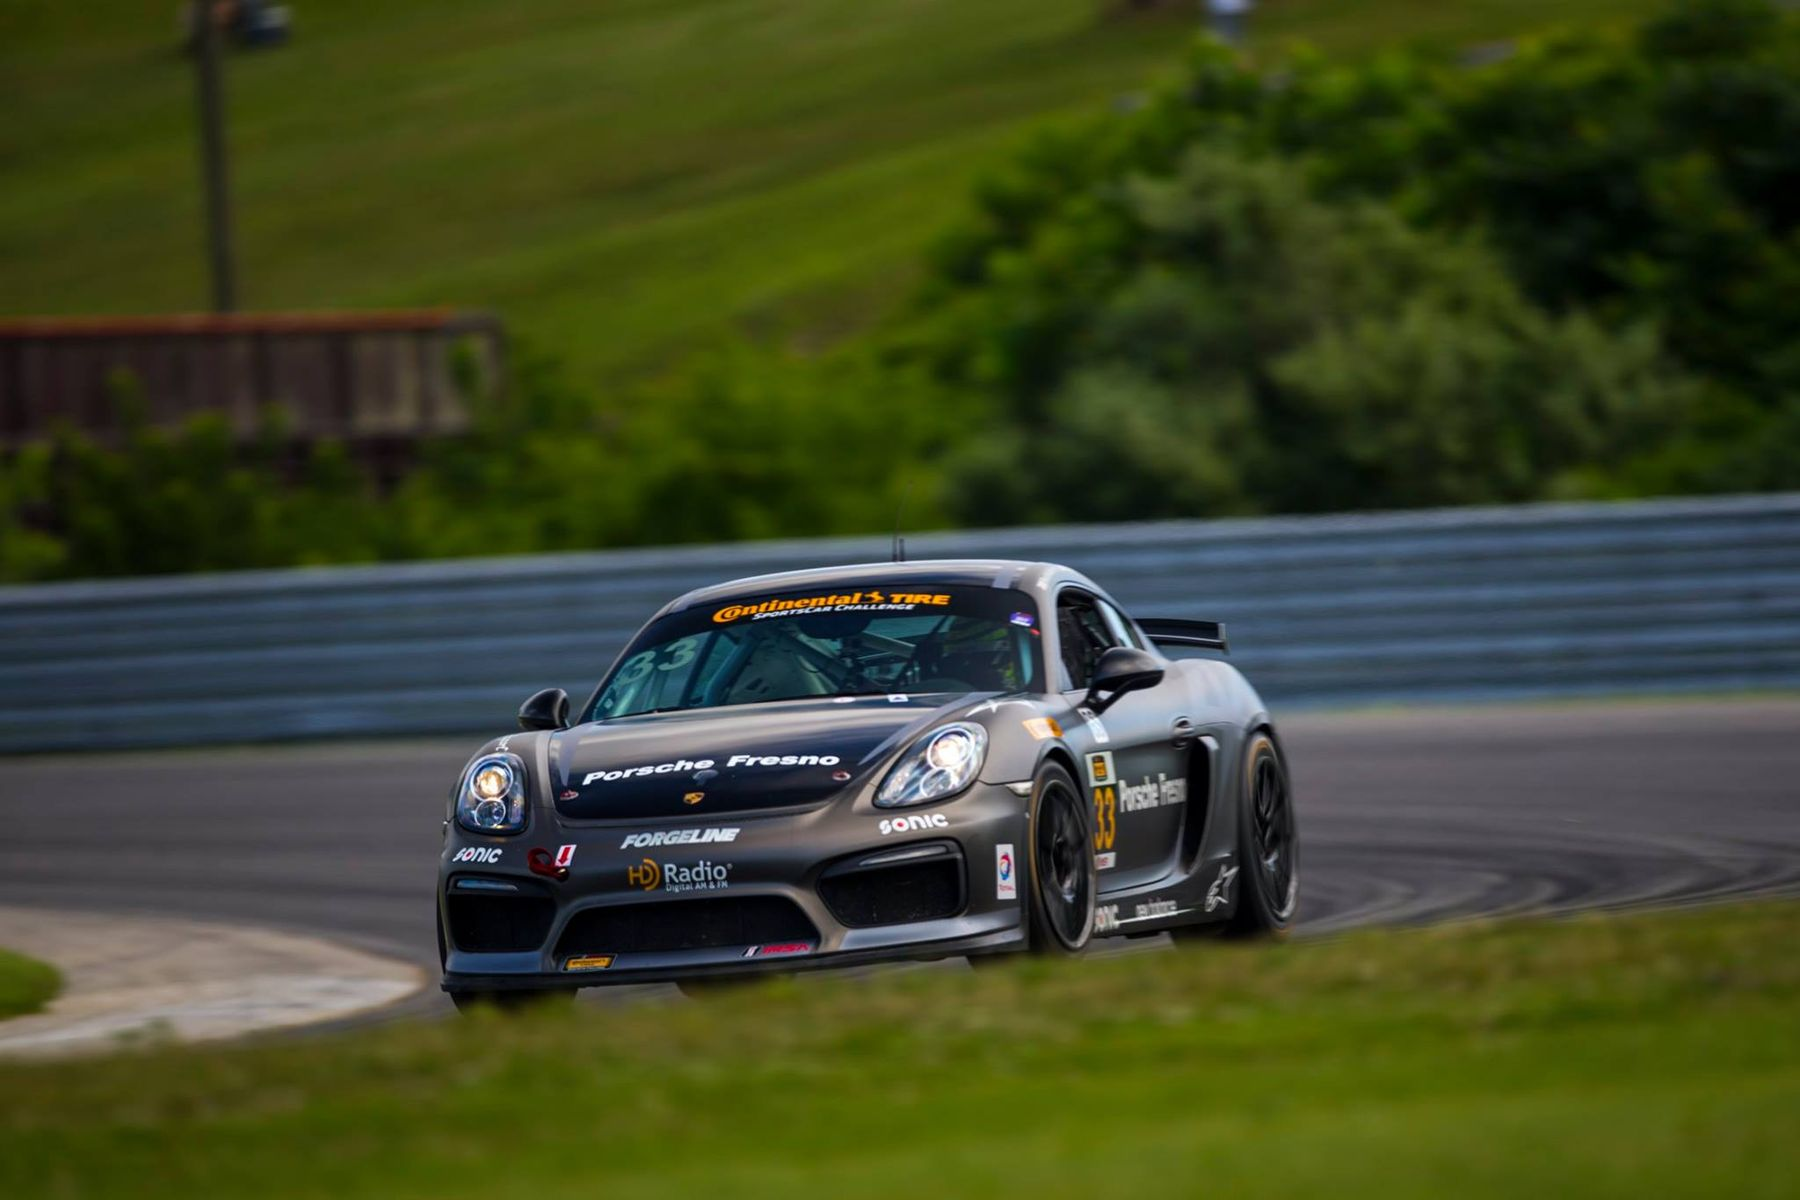 2017 Porsche Cayman | Stevenson Motorsports Wins IMSA CTSC GS, at Lime Rock Park, in the #57 Chevrolet Camaro GT4.R on Forgeline One Piece Forged Monoblock GS1R Wheels